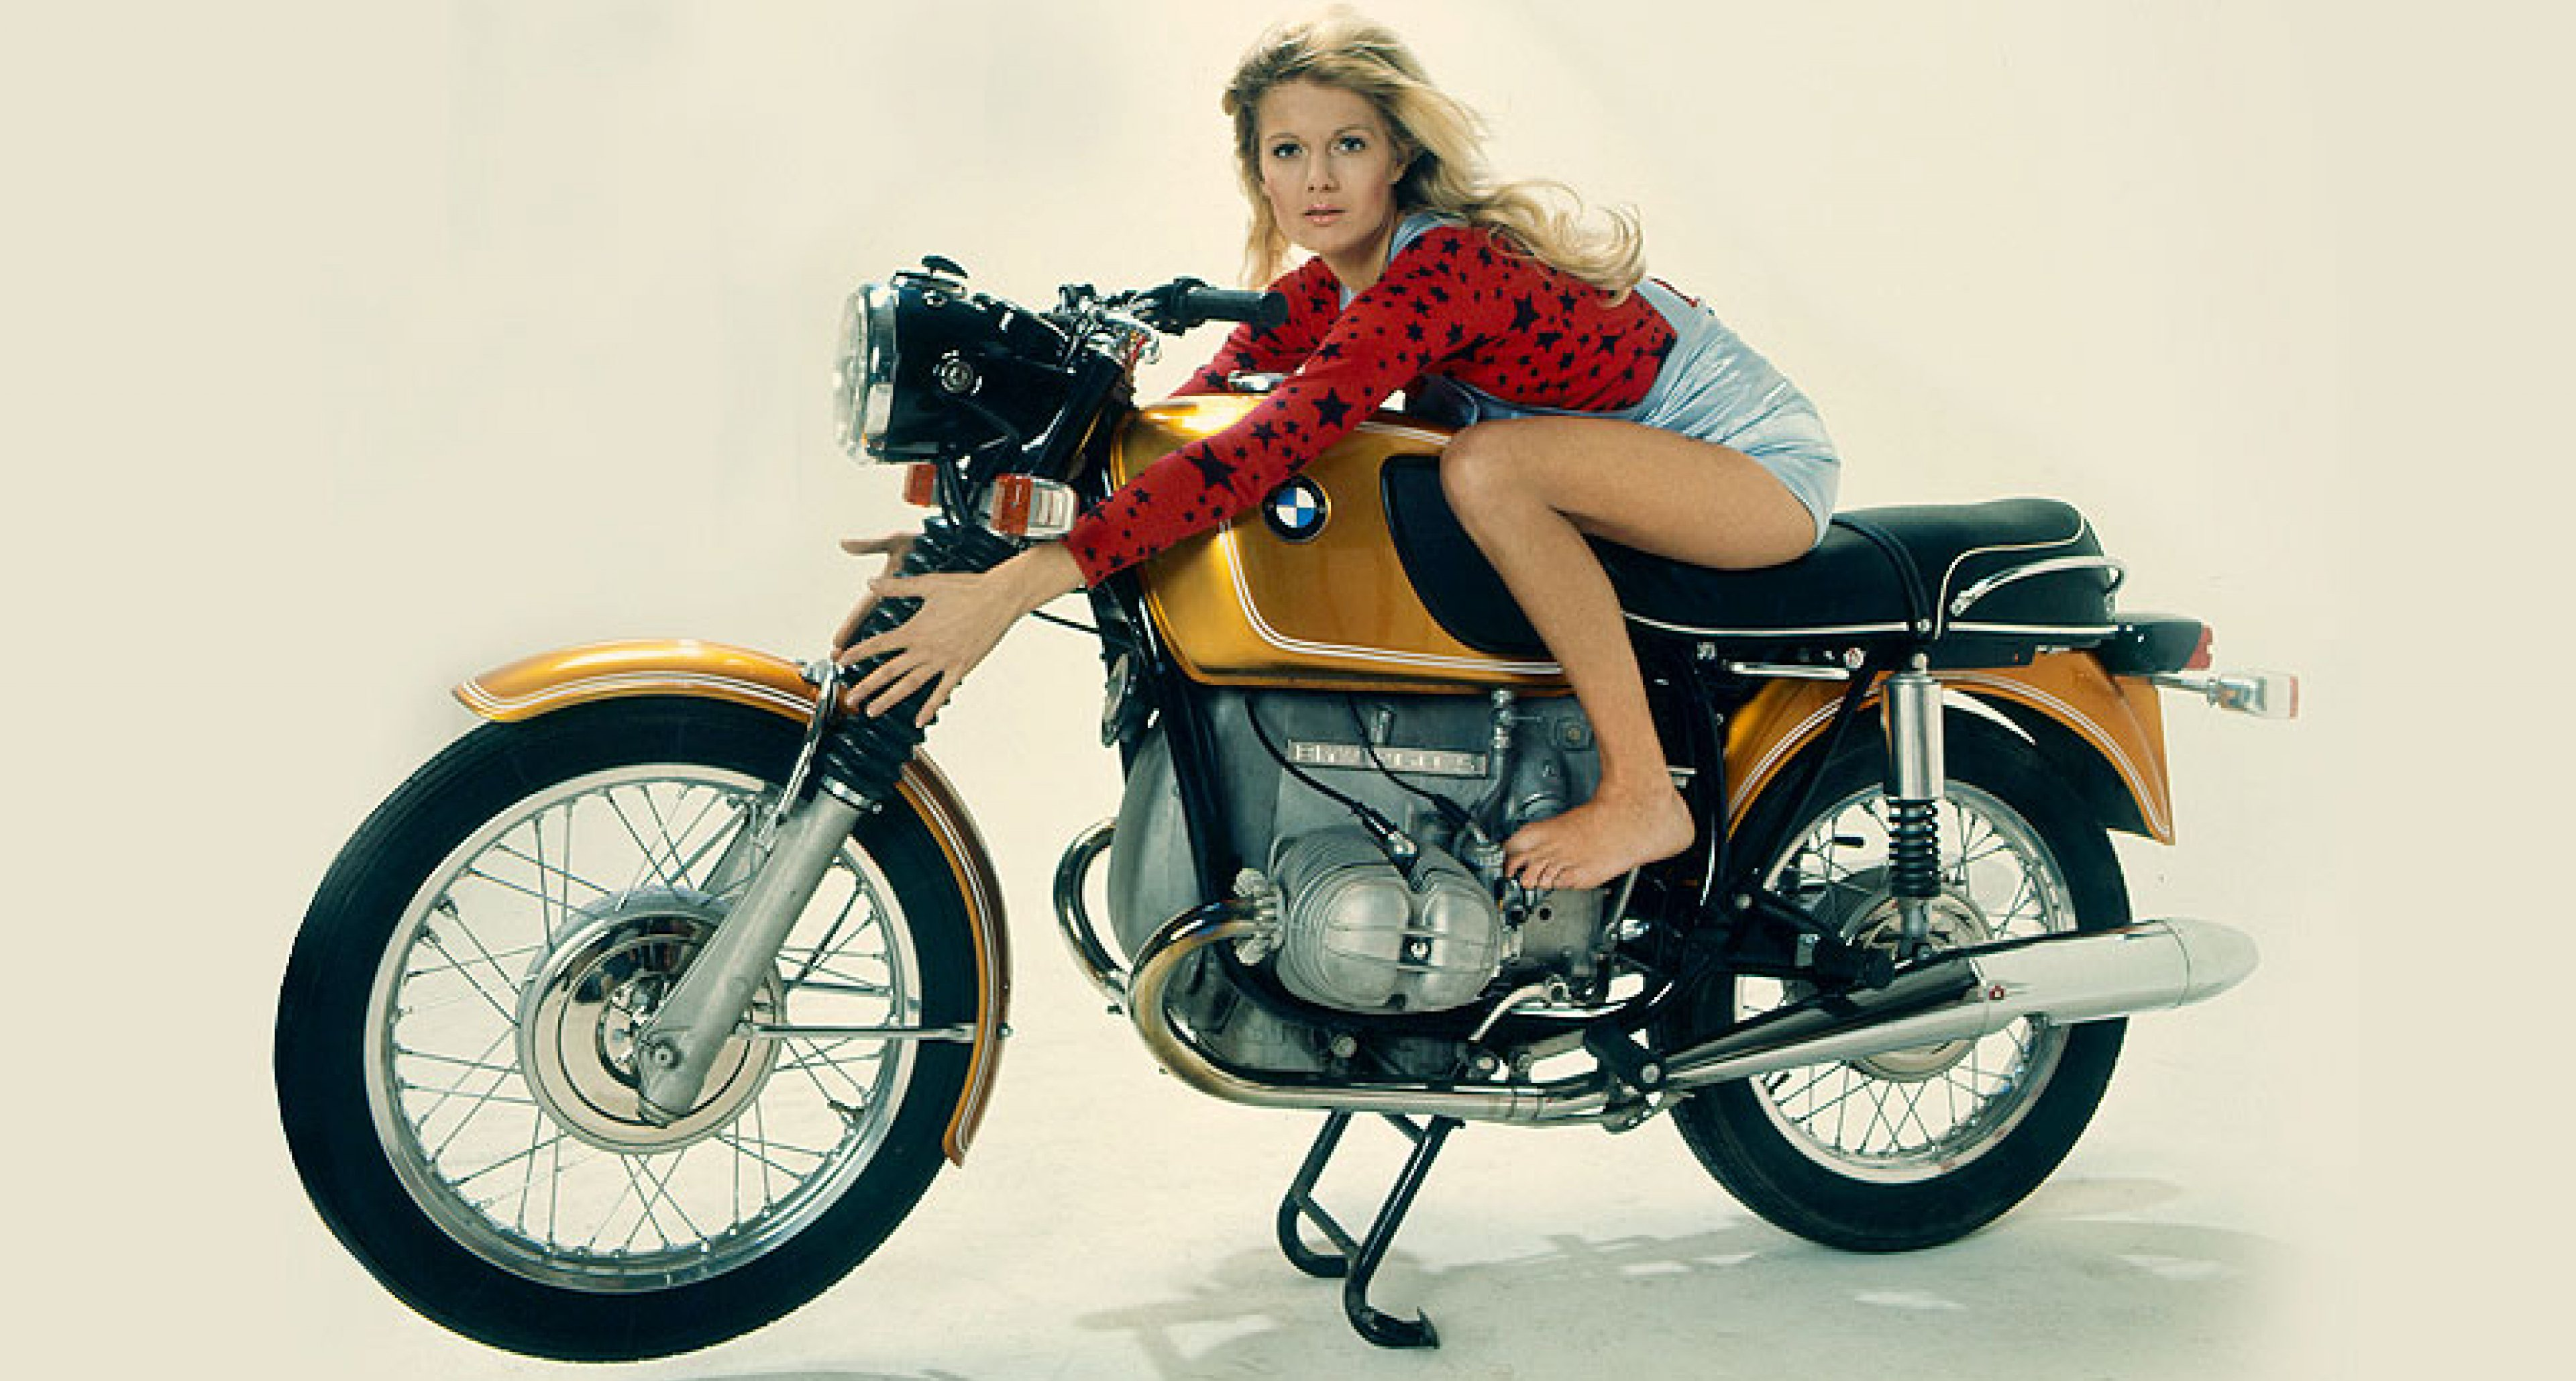 Classic Bmw Motorcycles Models Hobbiesxstyle